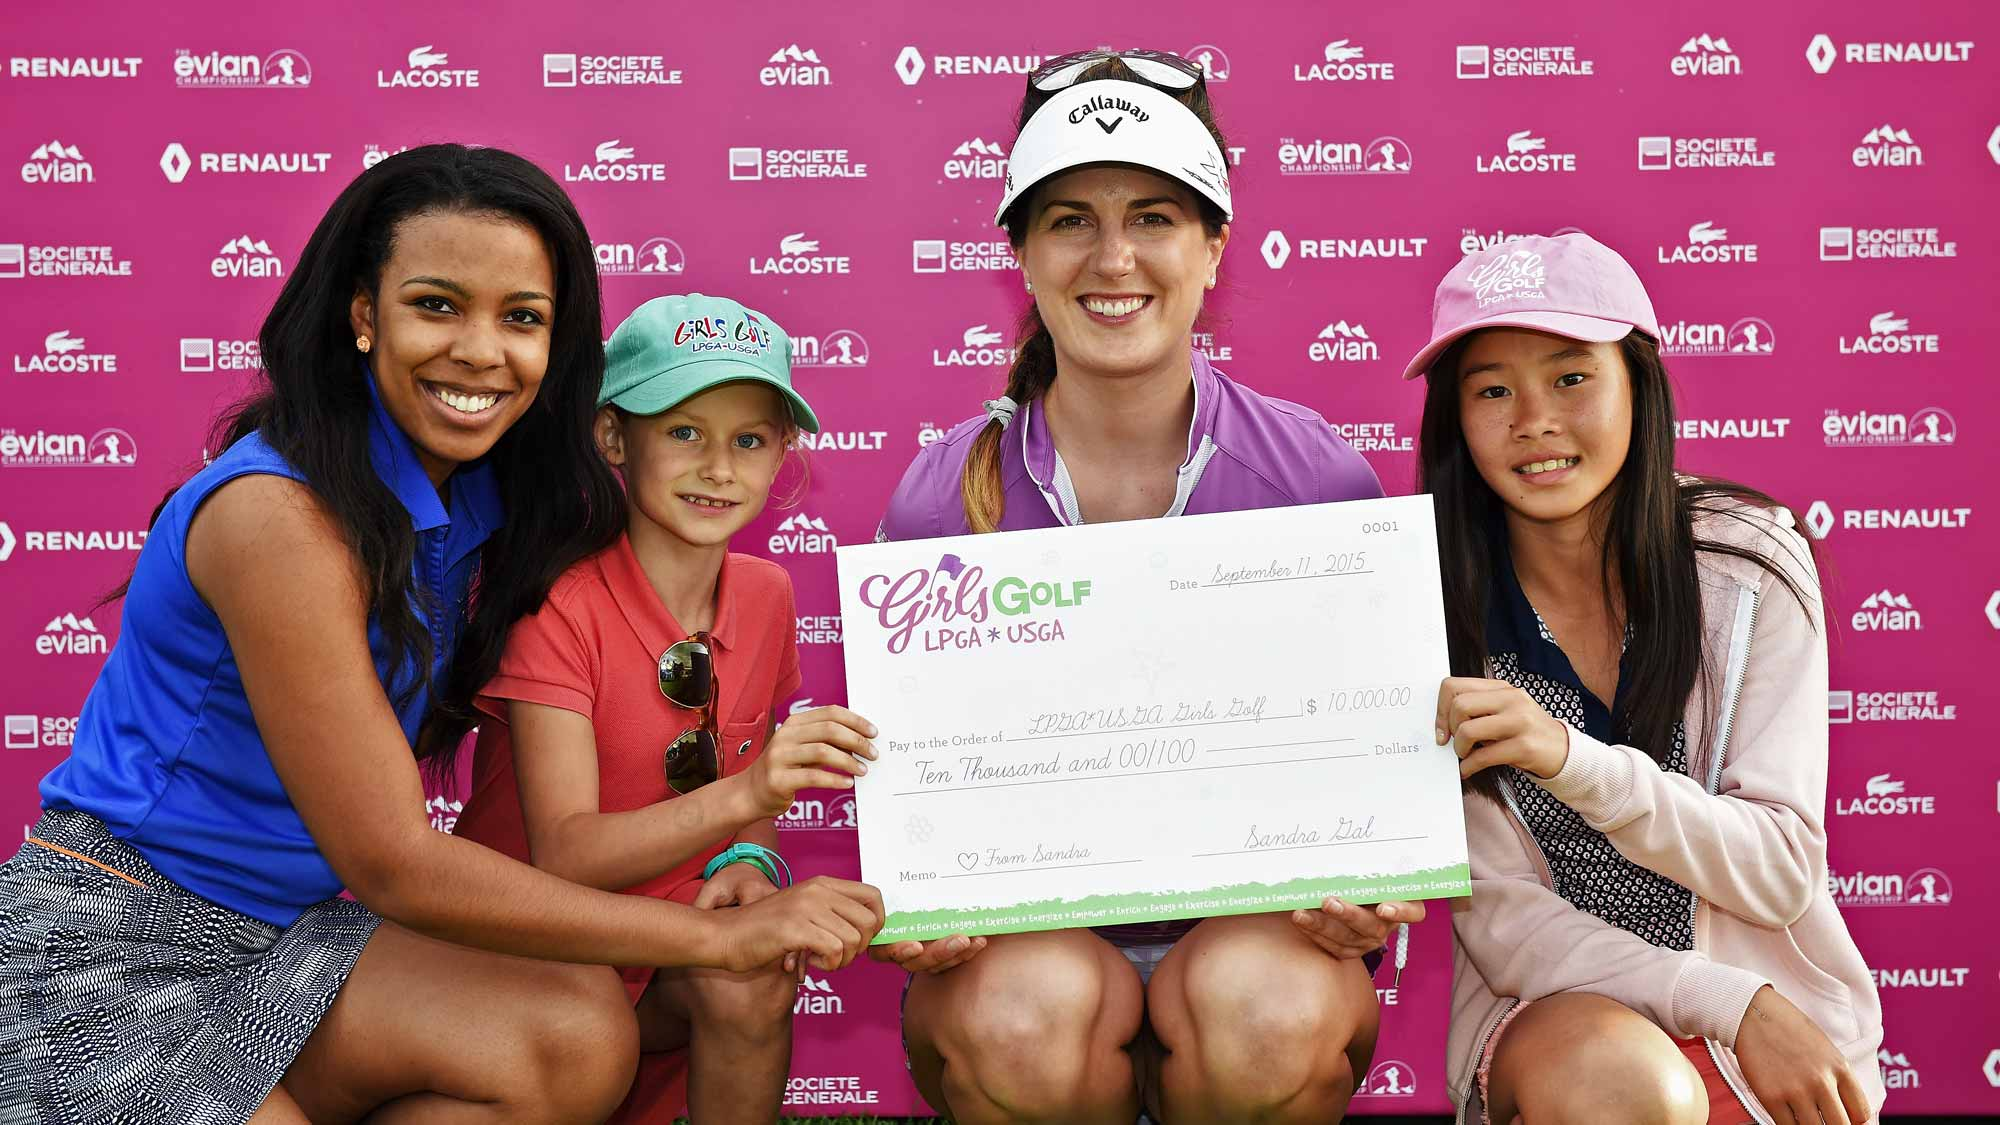 Sandra Gal presents a check for $10,000 to LPGA Girls Golf during the second round of the Evian Championship